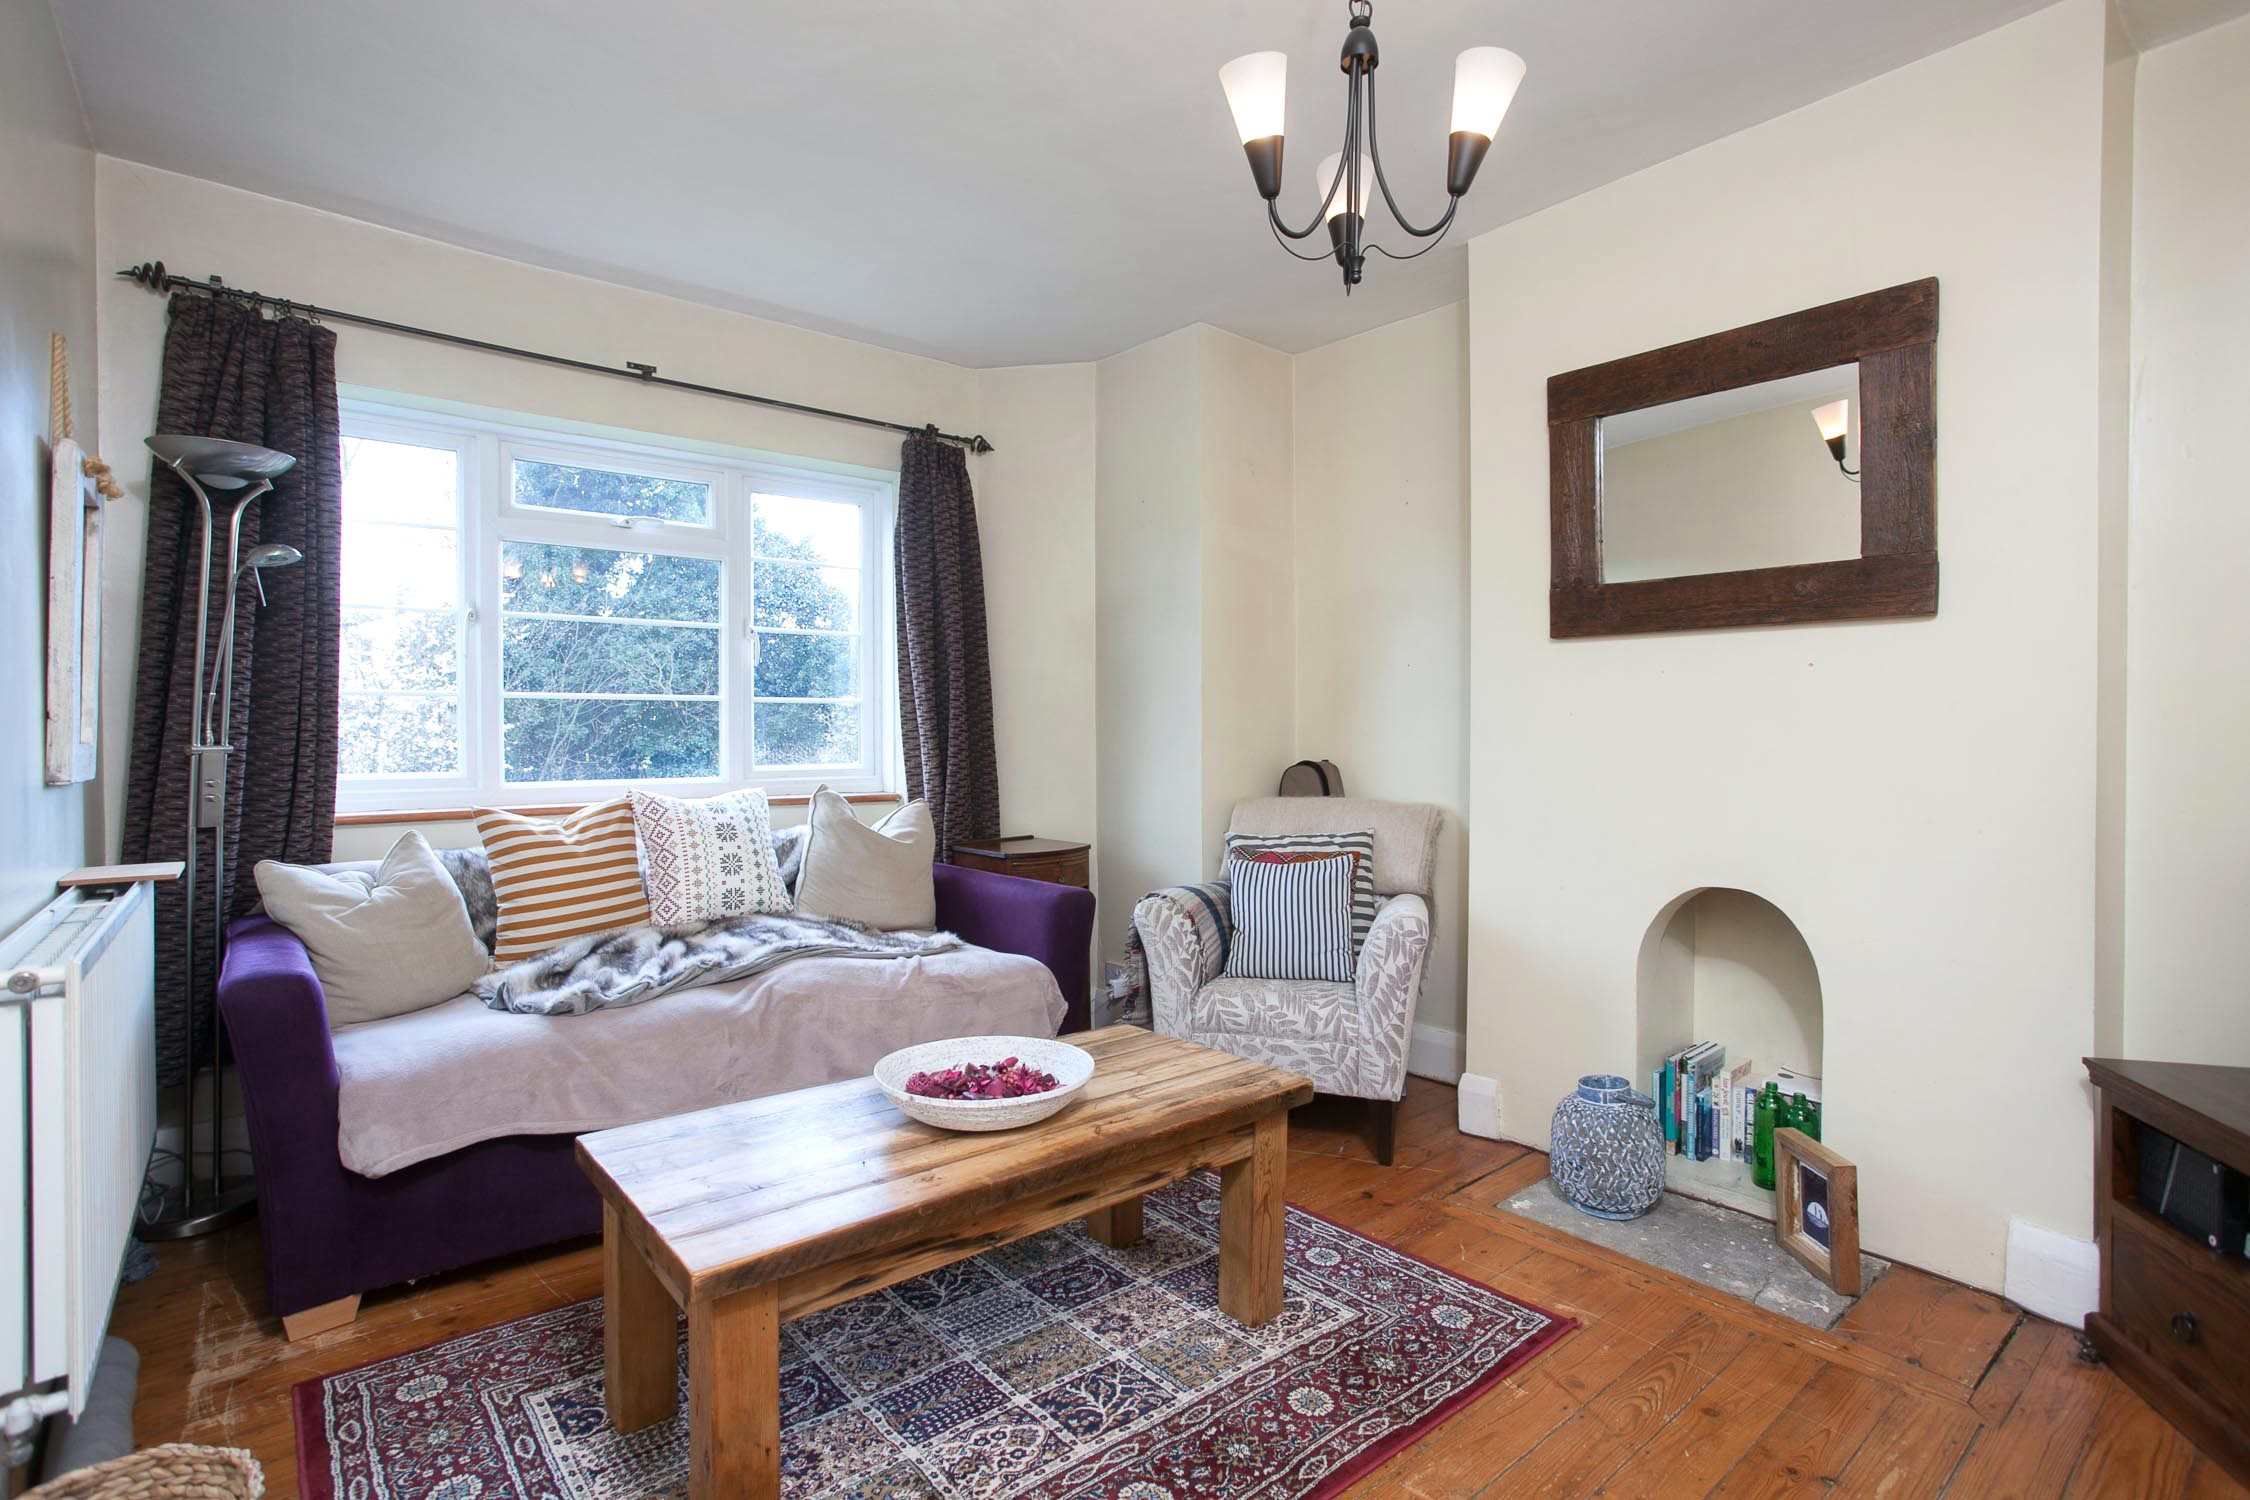 Portico 1 Bedroom Flat Recently Let In East Dulwich